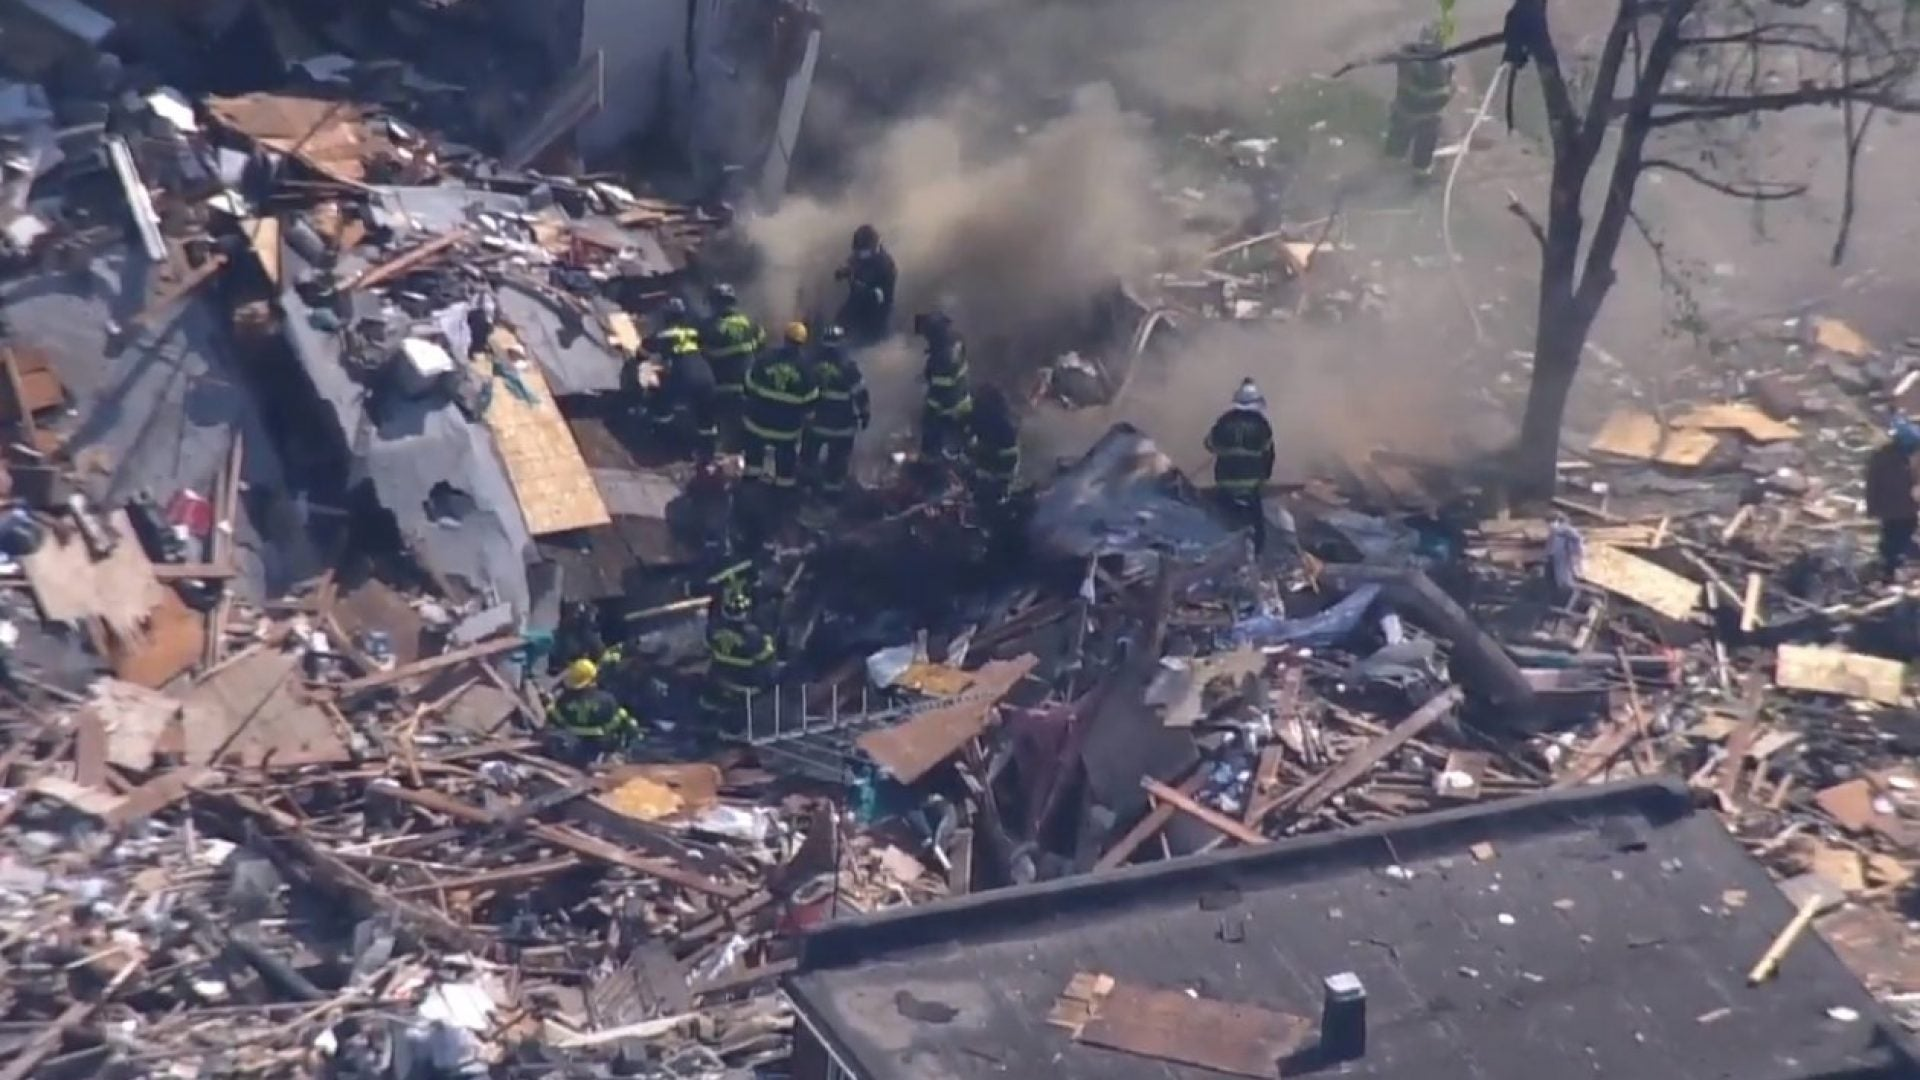 Major Explosion In Baltimore Leaves At Least 1 Dead, Others Injured